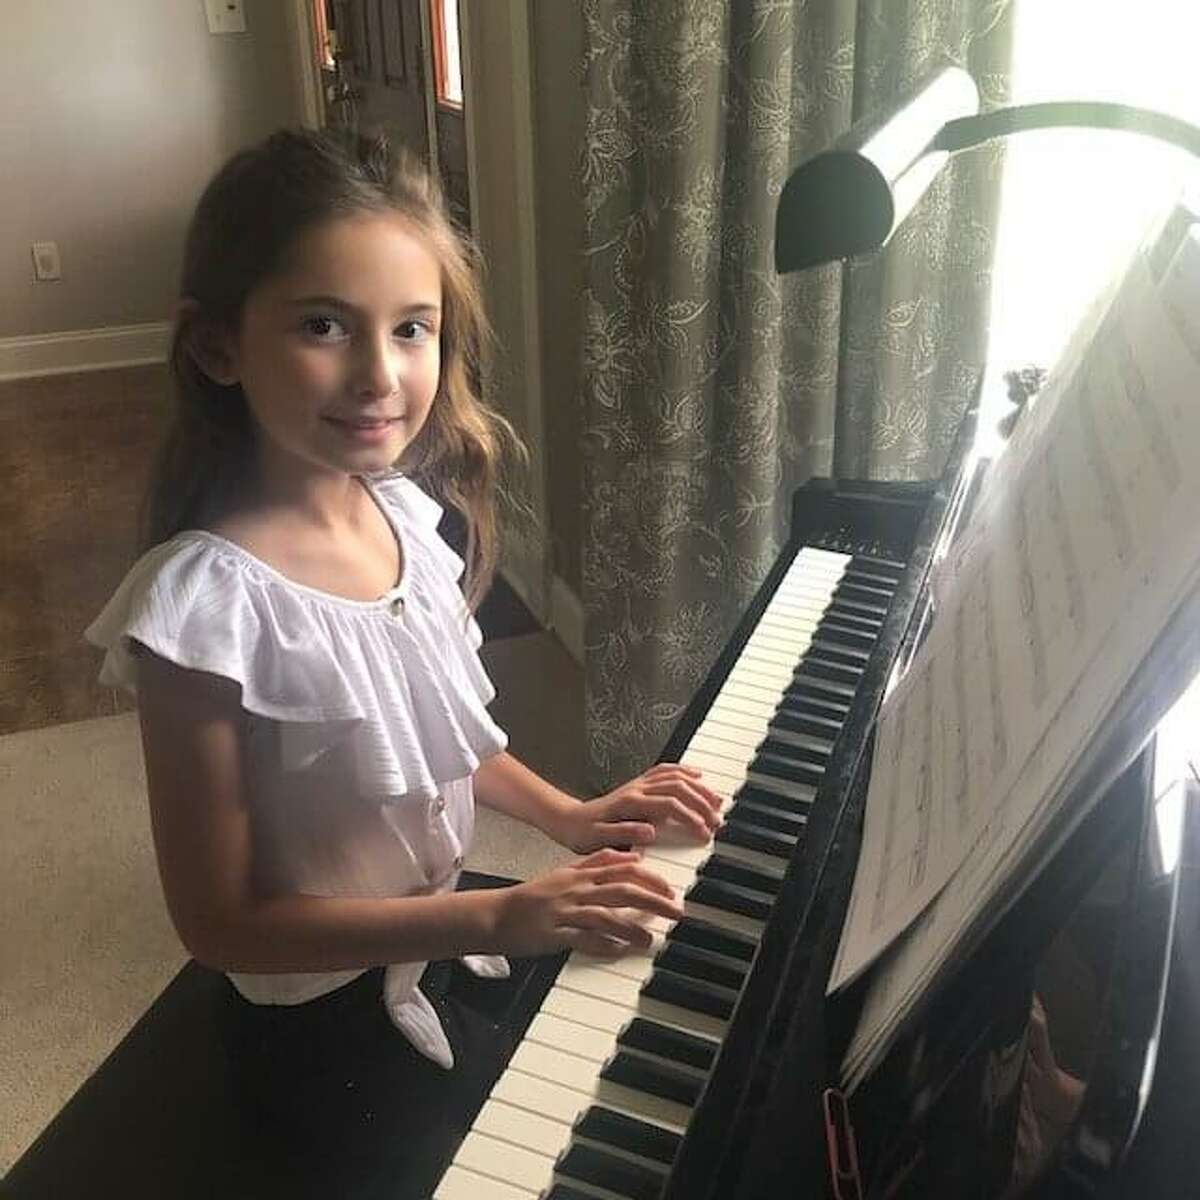 Addyson Tabankin, of Rexford, N.Y., daughter of New York Army National Guard Lt. Col. Shawn Tabankin, placed first in the 10-11 age group of the Military Kids Have Talent Contest after two weeks of national public voting.